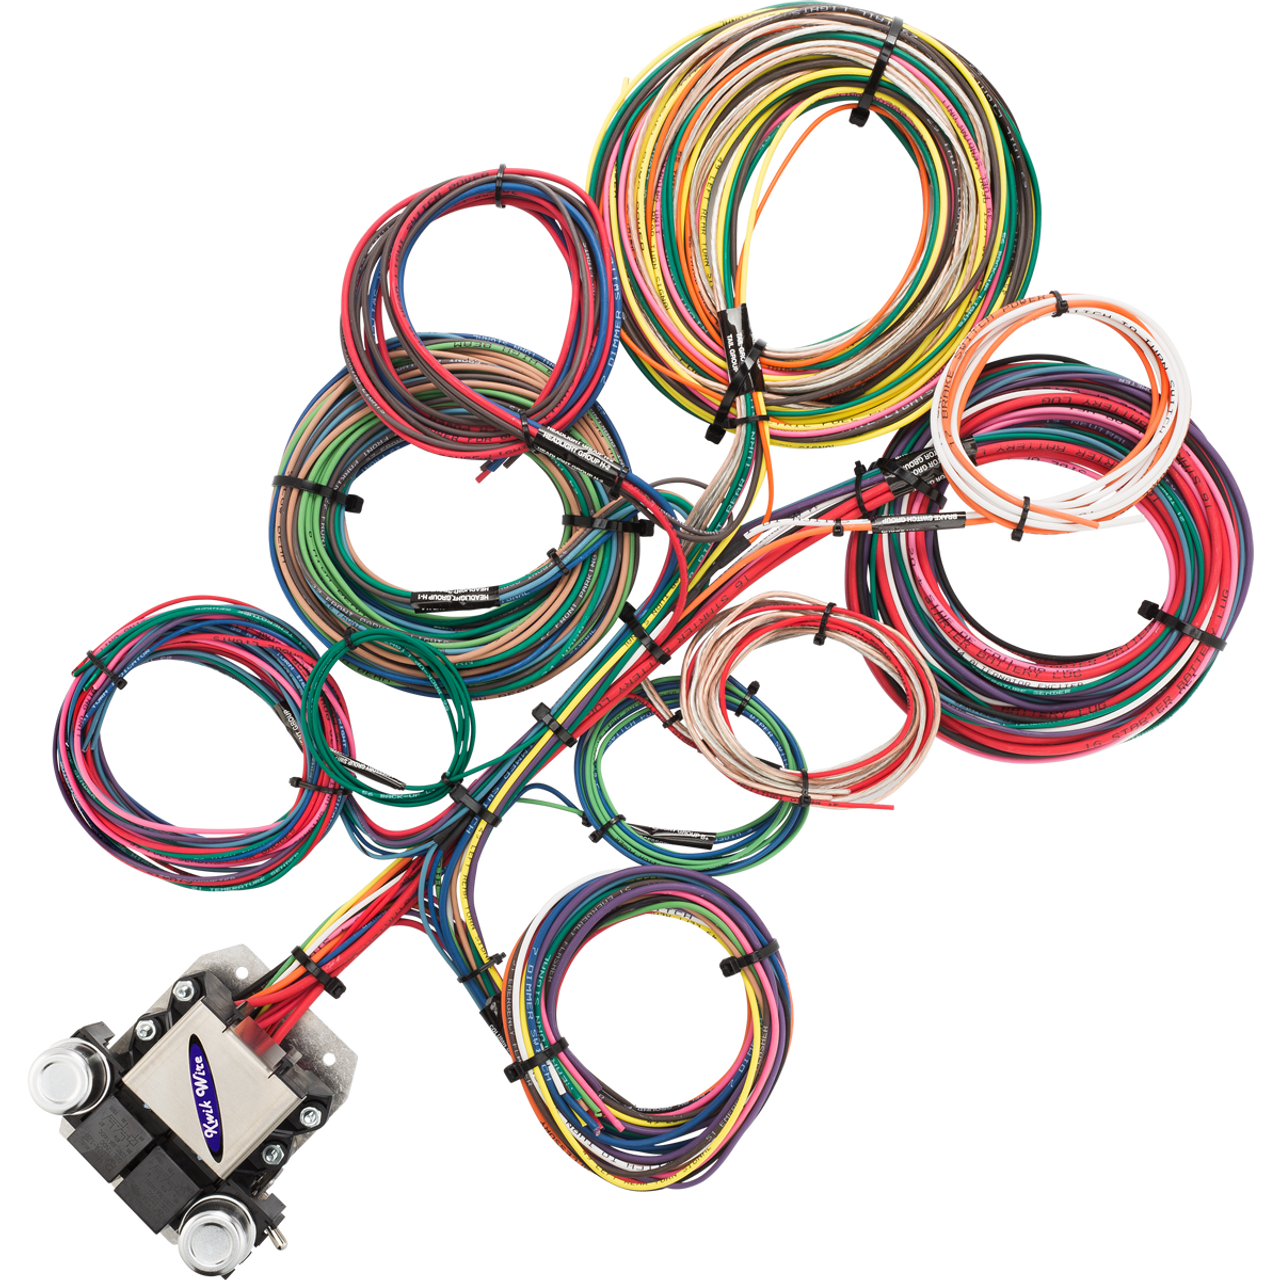 Painless Wiring Harness Hot Rod Street Circuit Example Electrical U Labs Fun 1200x1200